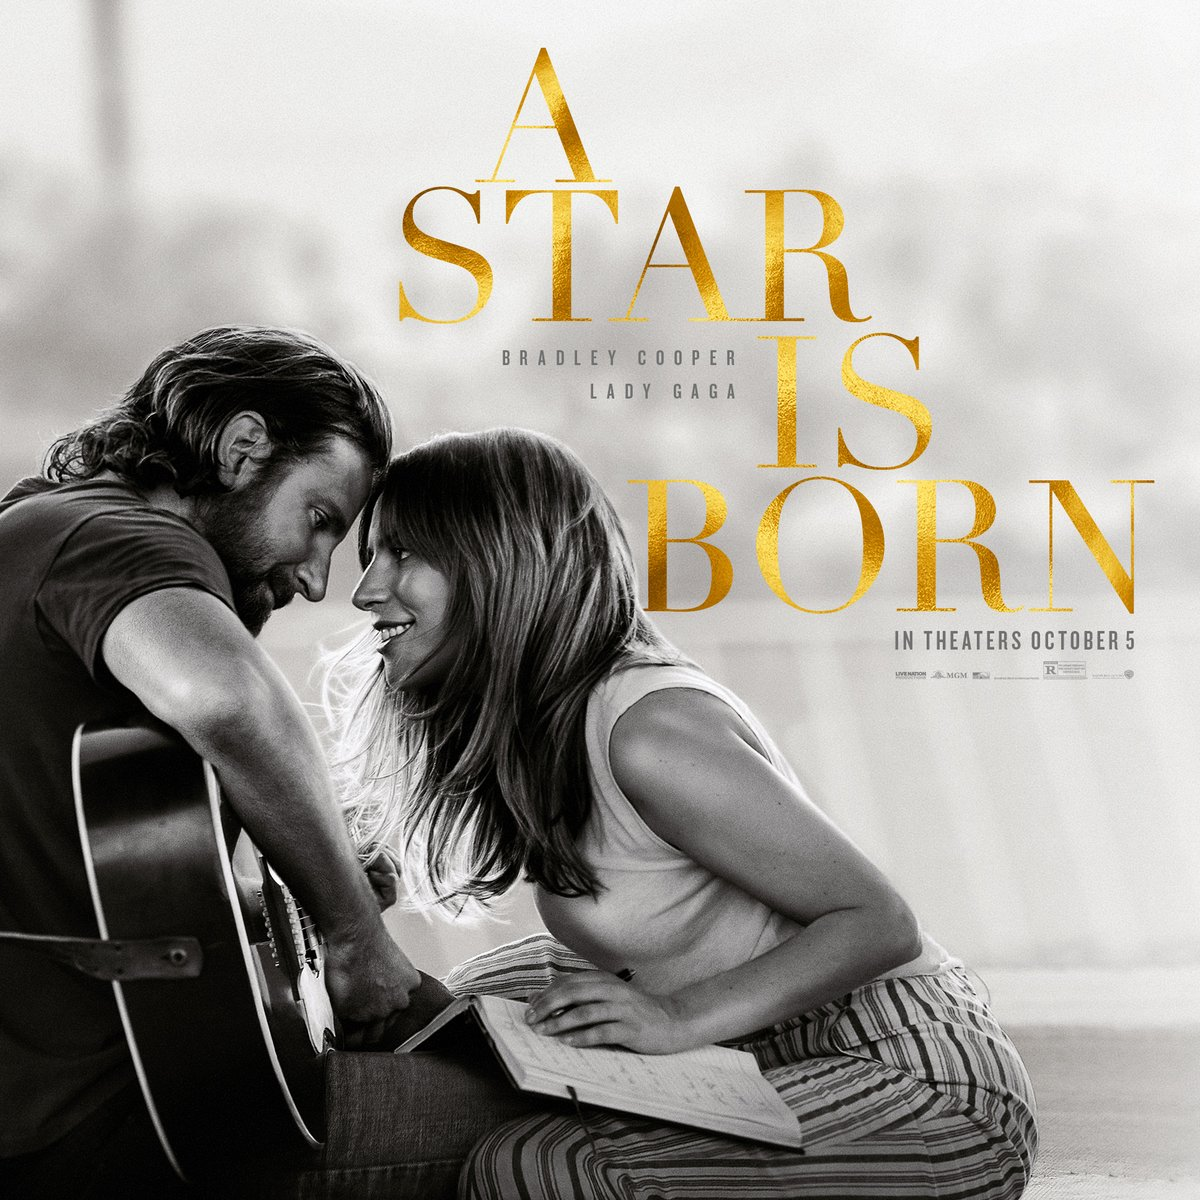 A STAR IS BORN REVIEW    One would think that by now, filmmakers would have decided to stop using the same premises repeatedly in their films. Despite this, 'A Star is Born' succeeds in capturing the hearts of audiences and critics alike as they witness a tale of ambition and downfall, just as the original did in 1937…   By Josh Osman